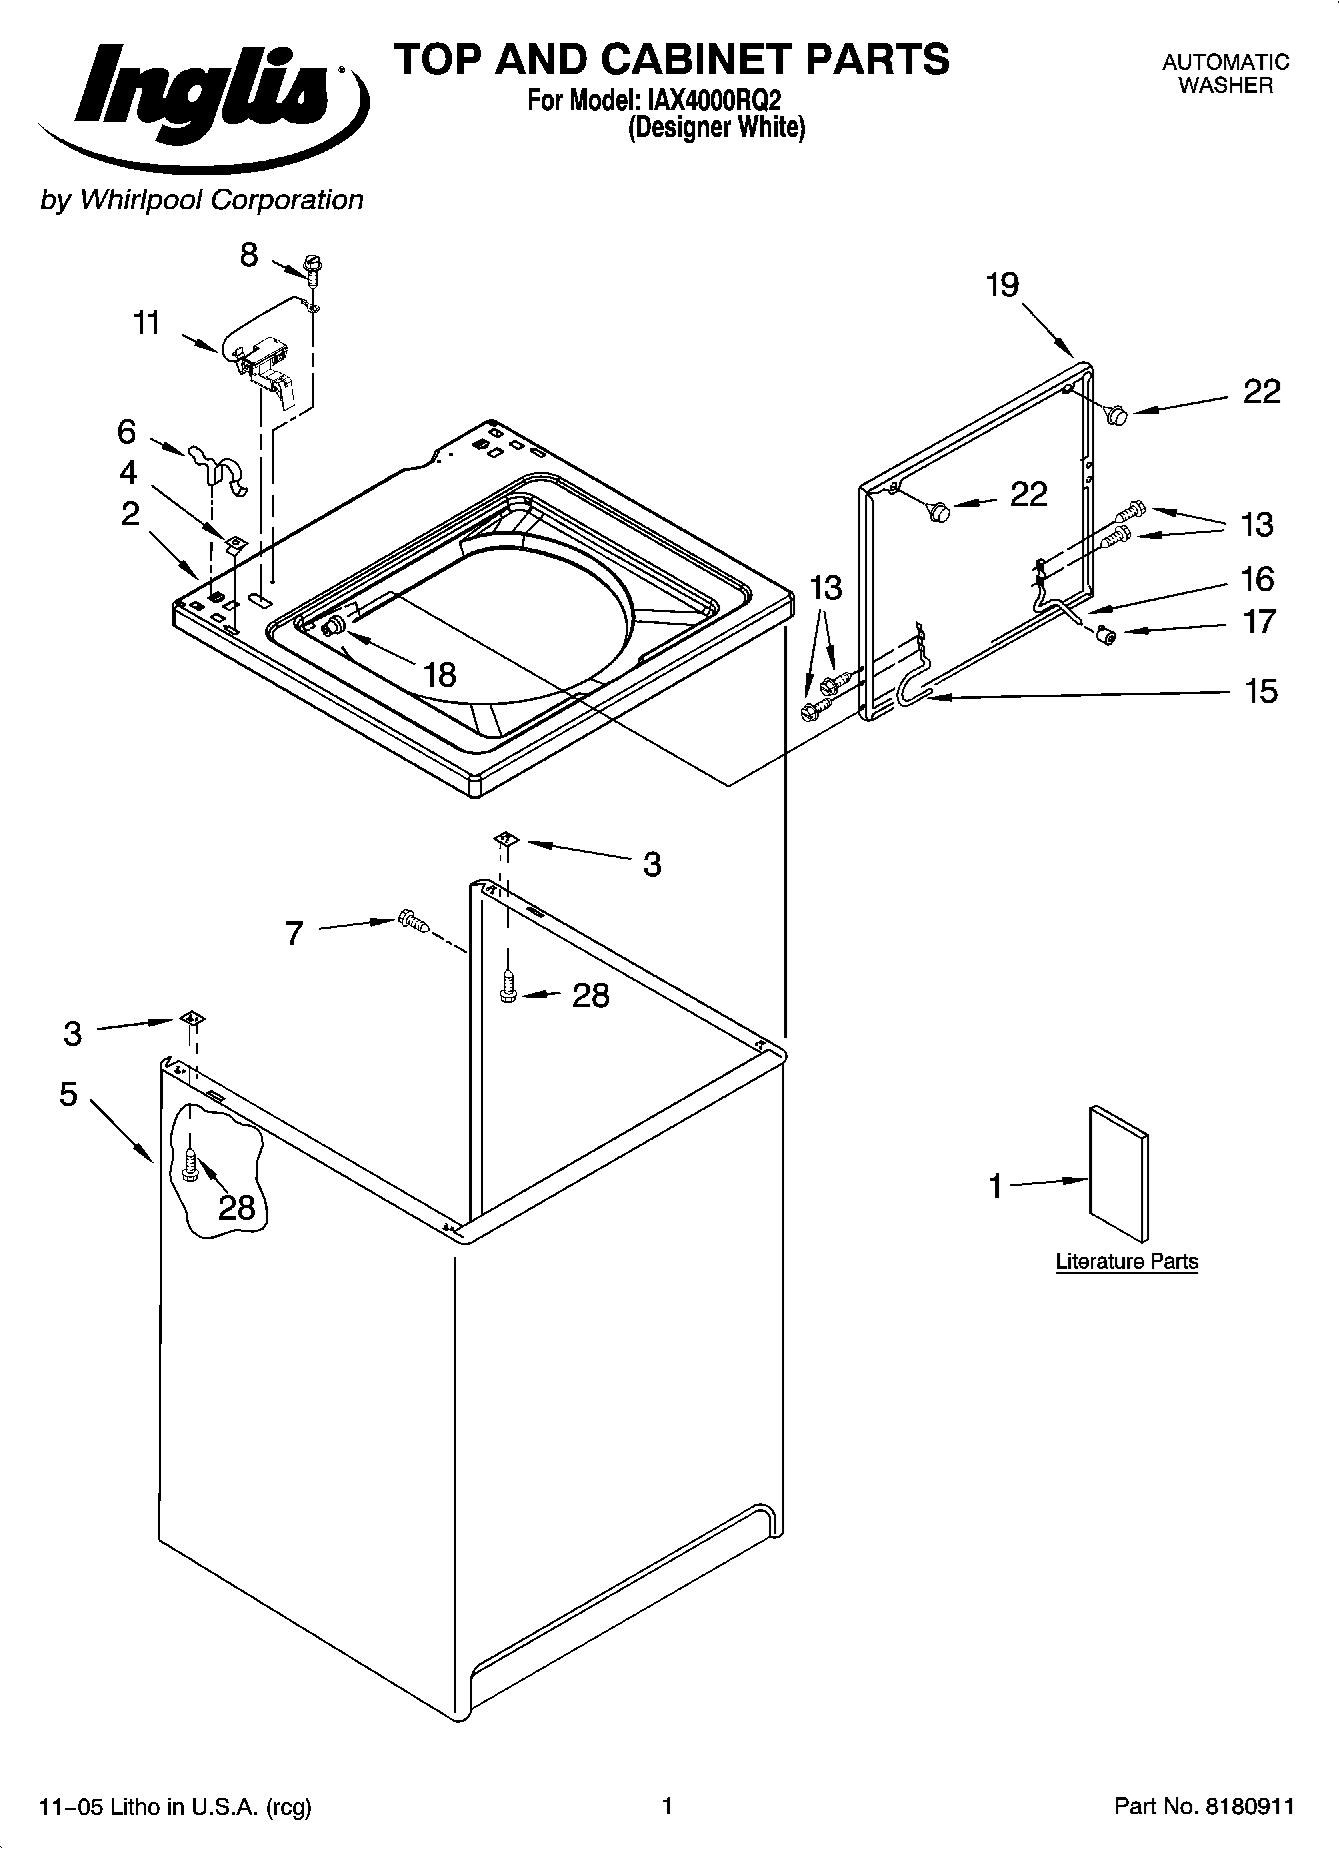 WhirlpoolImg_19000101 20150716_00089909?width\=1000 whirlpool grill wiring diagram gandul 45 77 79 119  at gsmx.co